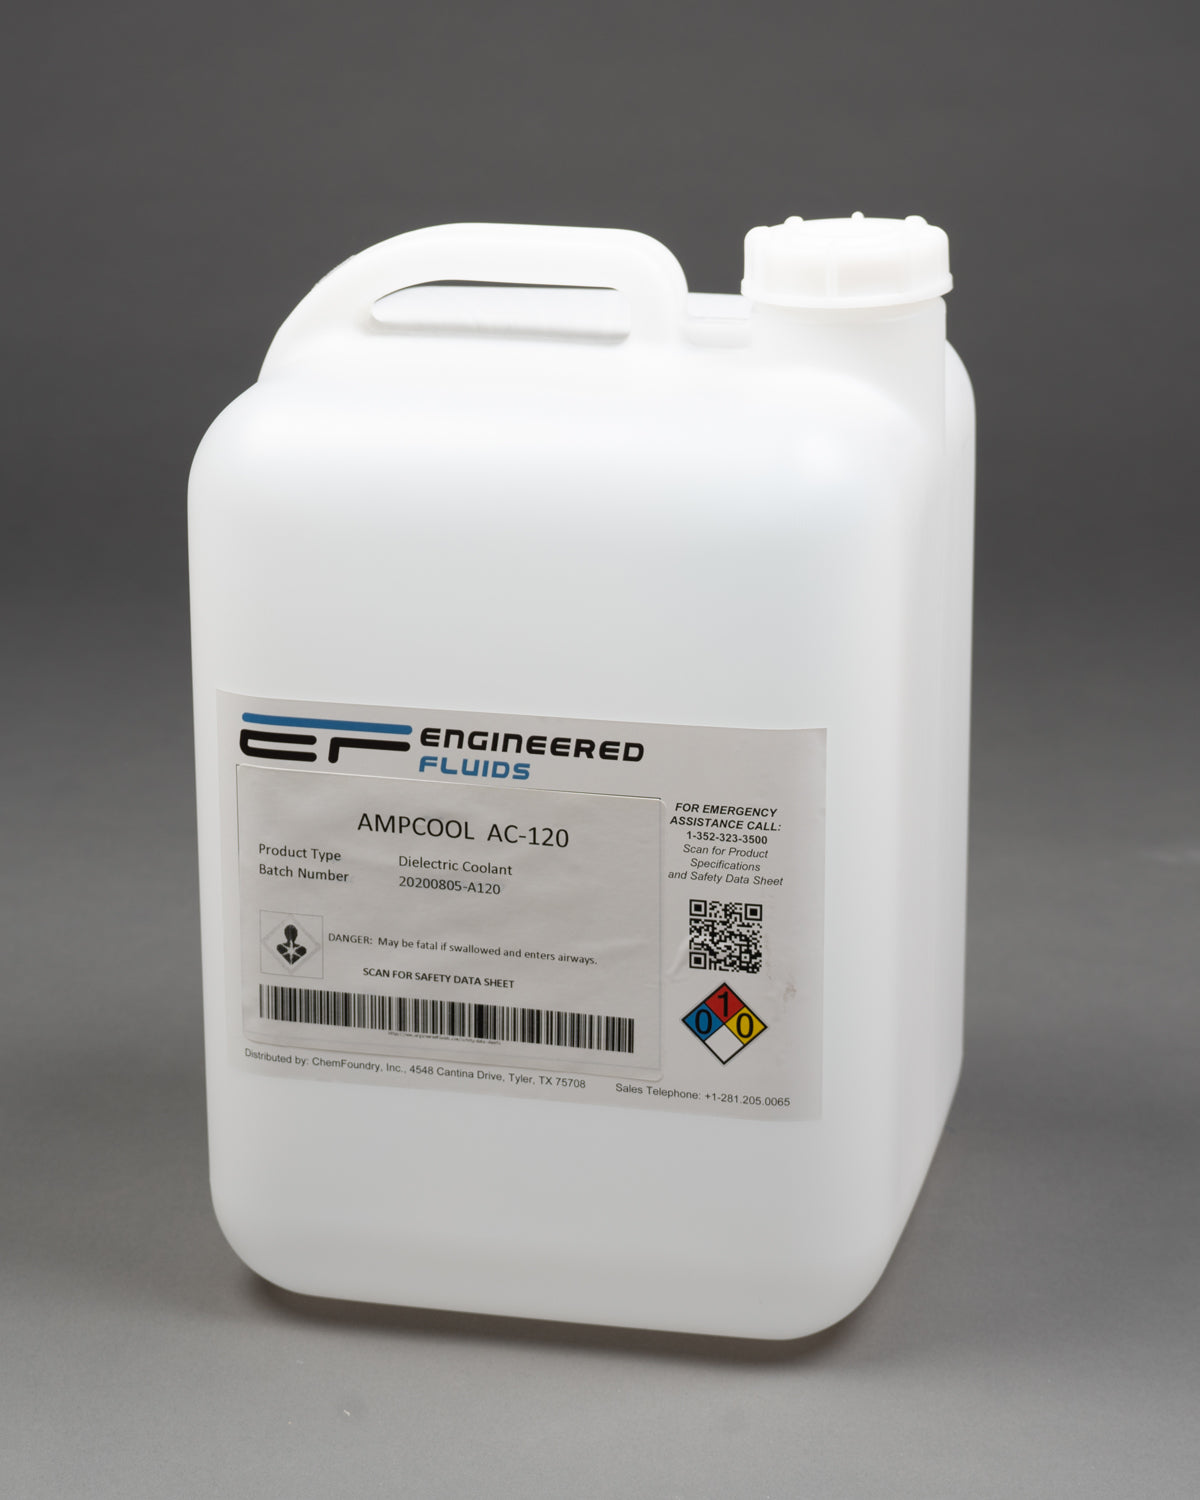 AmpCool® AC-120 Dielectric Coolant Questions & Answers